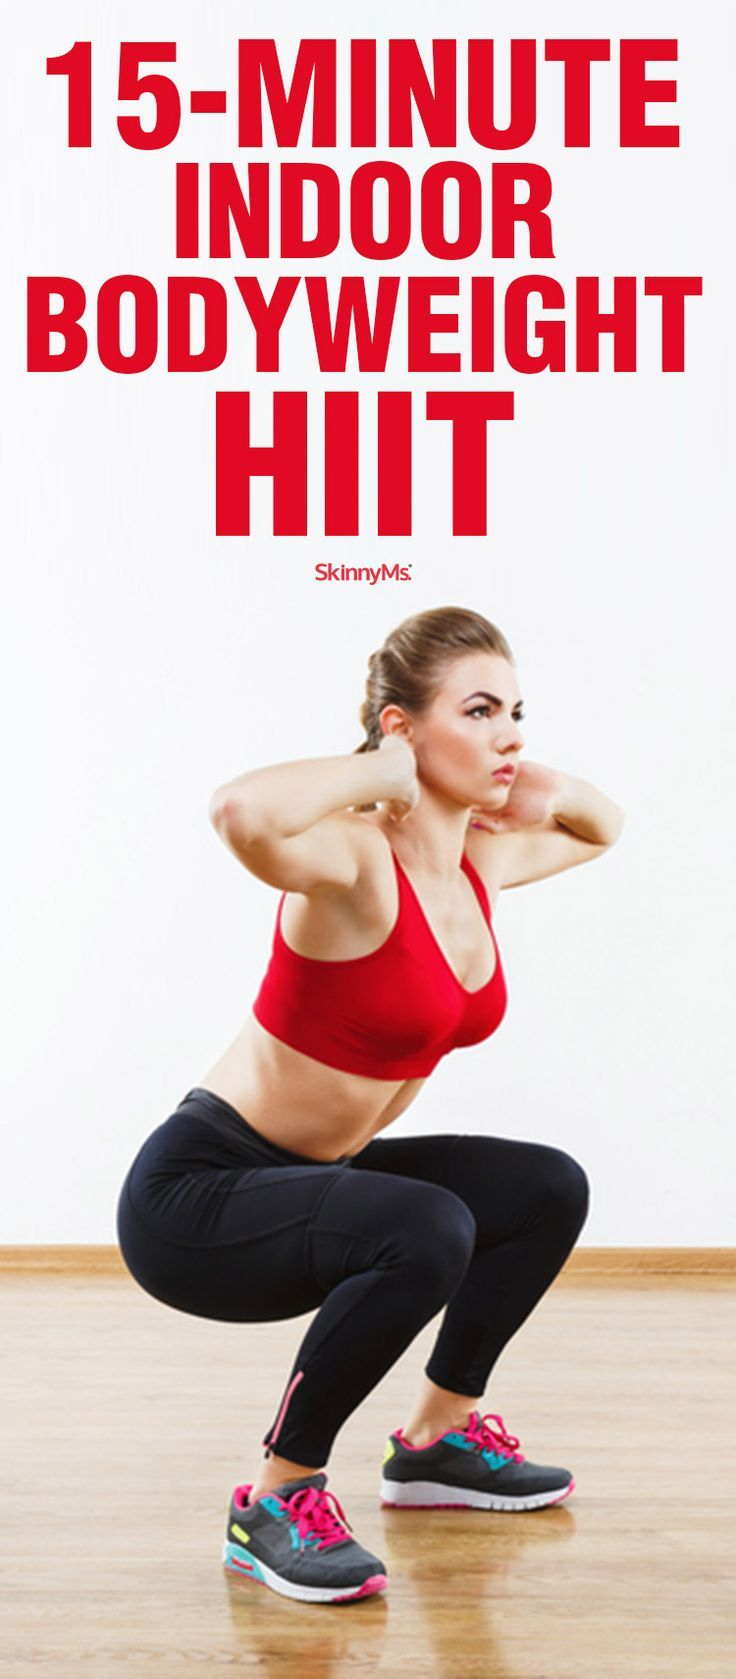 in just 15 minutes, you�ll get a total-body cardio and strength workout! |15-Minute Indoor Bodyweight HIIT http://skinnyms.com/ #weightloss #workout #fitness